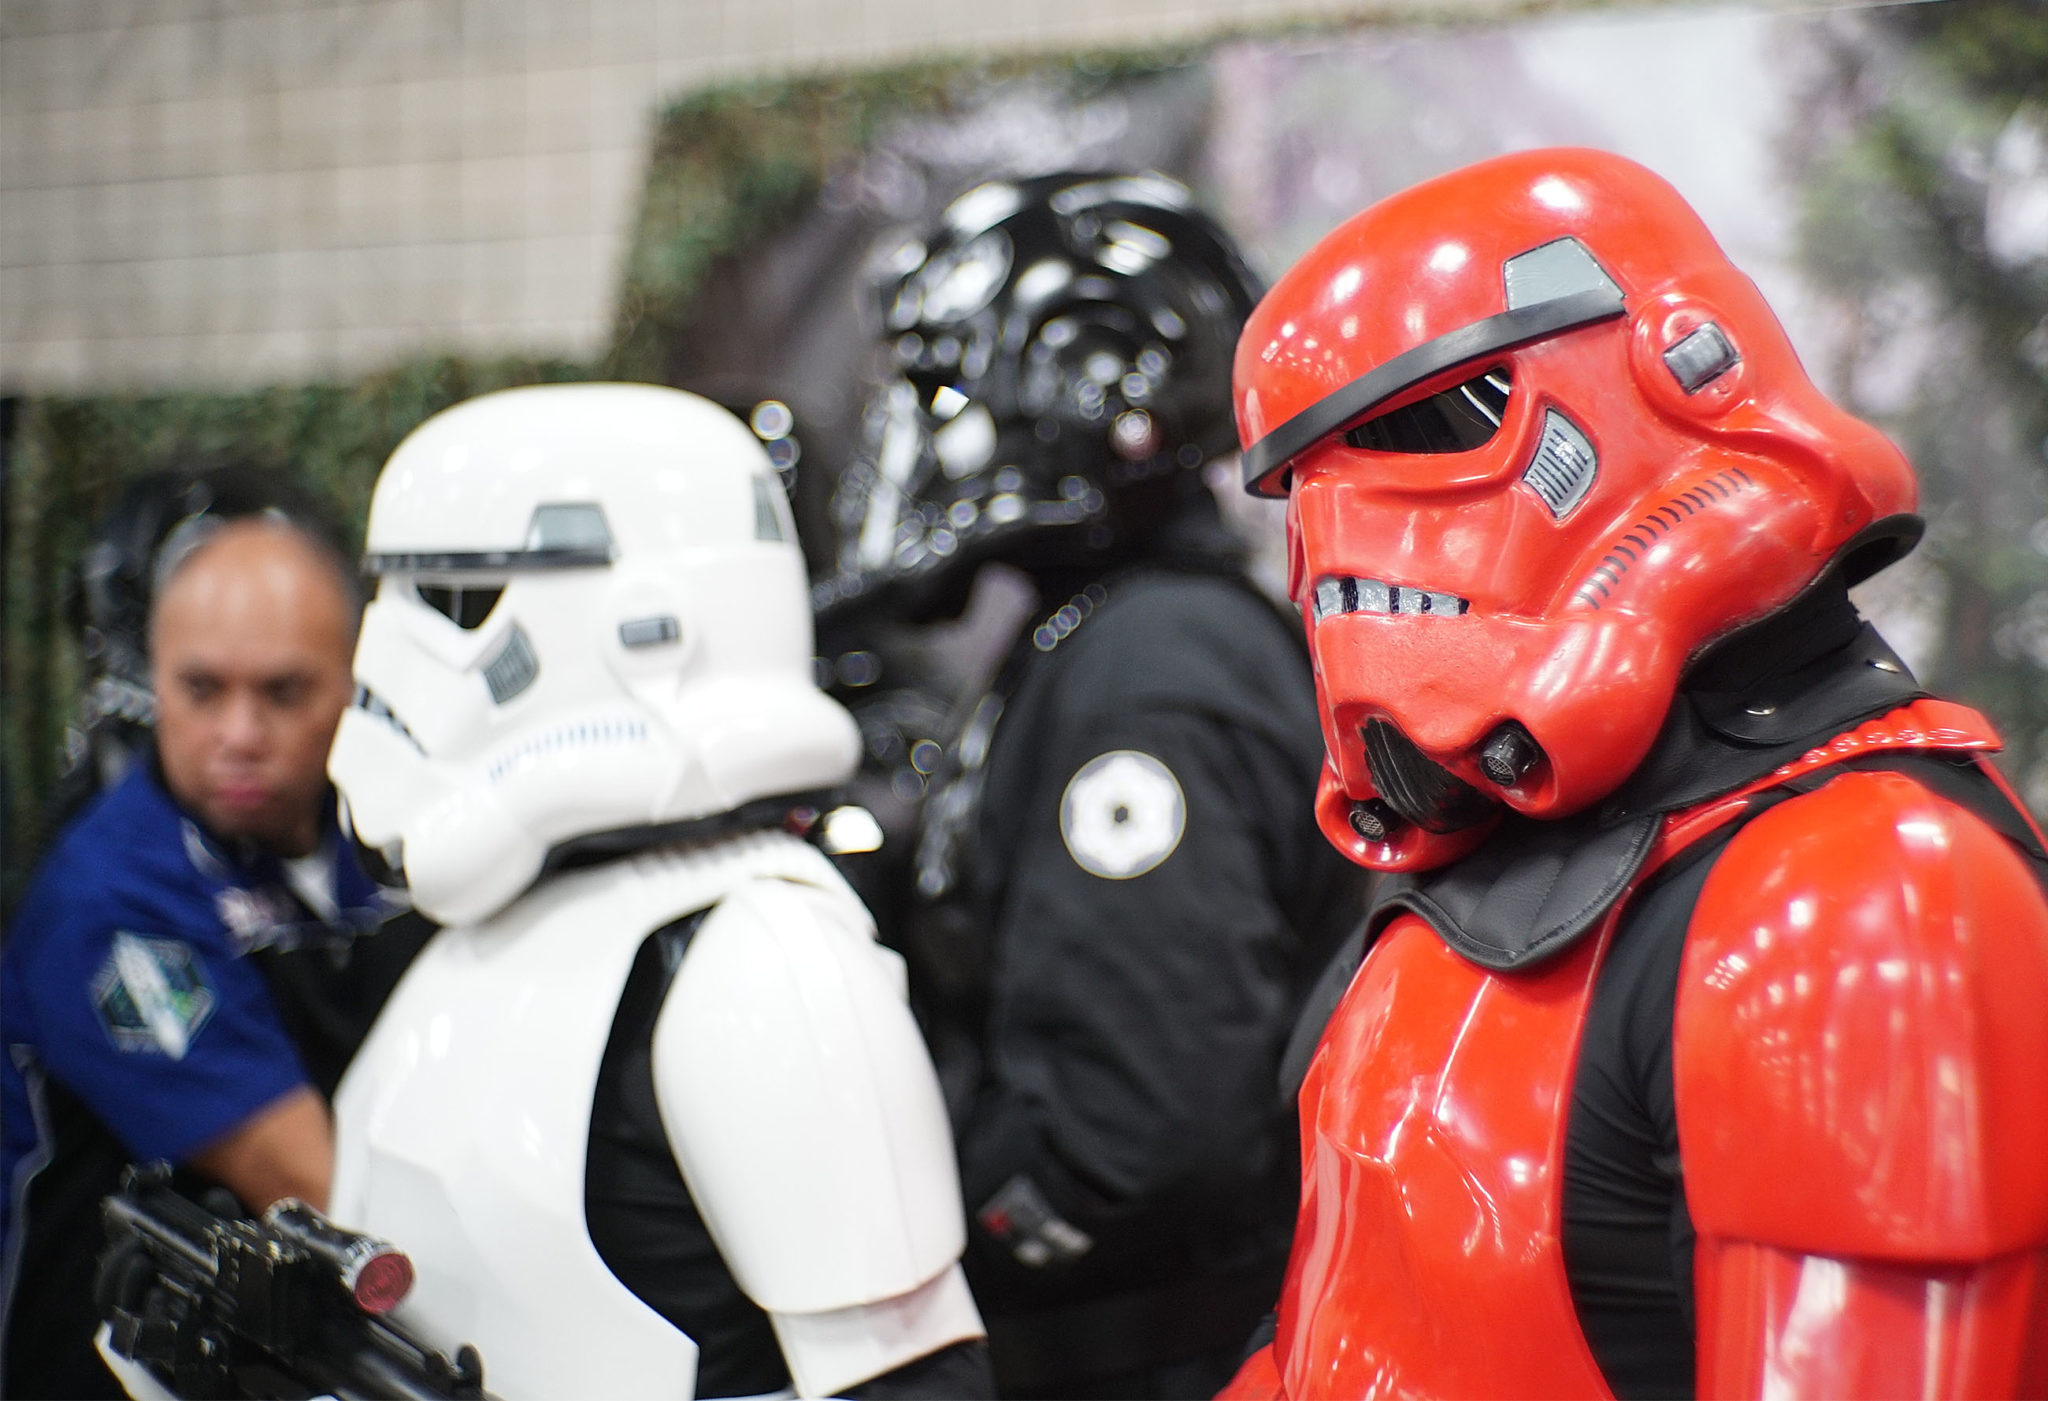 <p>&#8220;Star Wars&#8221; stormtroopers pose for photographs with attendees at the third annual comics convention.</p>